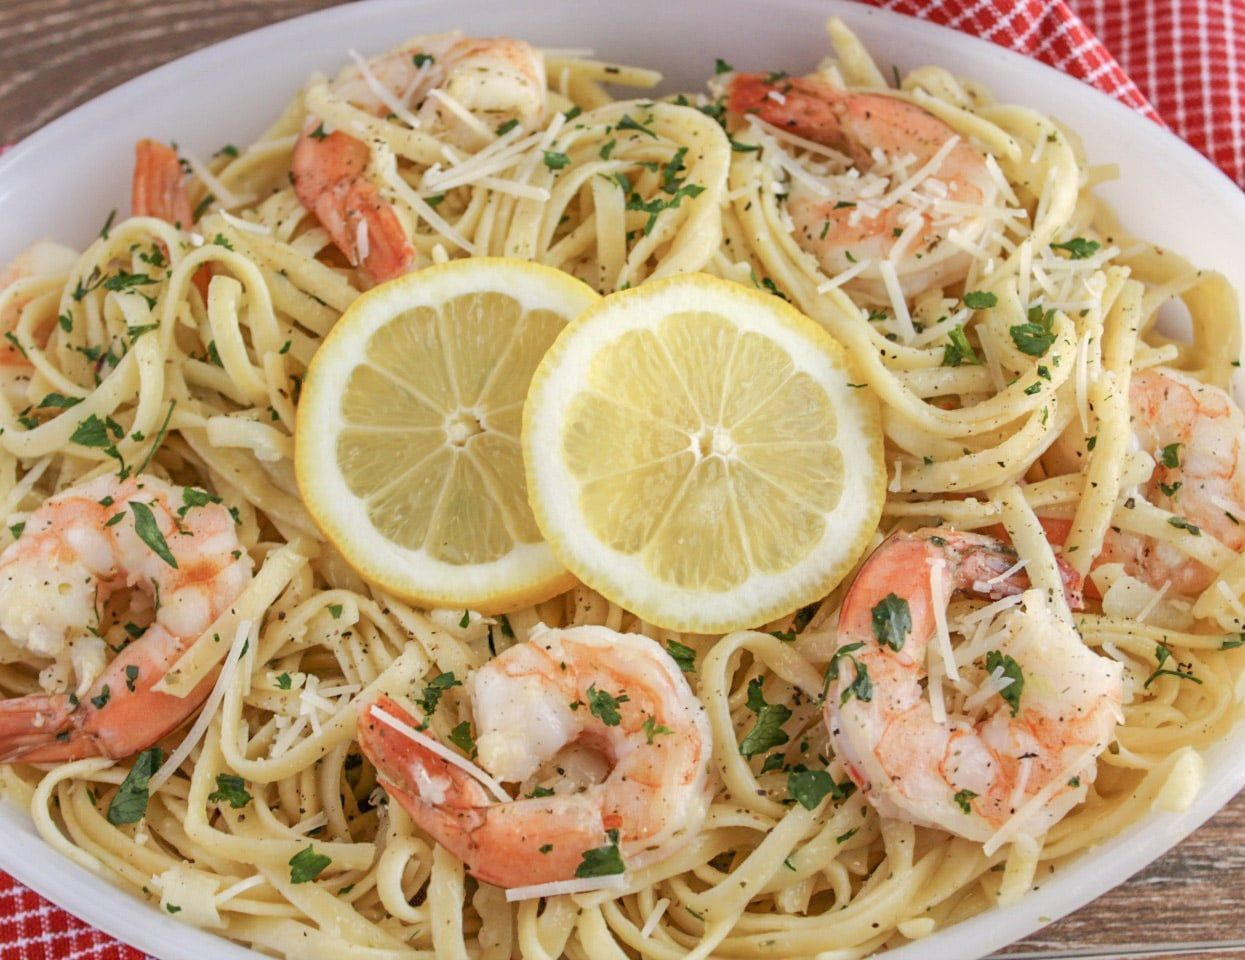 Lemon Garlic Parmesan Shrimp Pasta #garlicparmesanshrimp Lemon Garlic Parmesan Shrimp Pasta is an easy 30 minute recipe that features tons of savory shrimp tossed in pasta with a lemon garlic sauce and parmesan cheese. This recipe is sure to become a new family favorite! #garlicparmesanshrimp Lemon Garlic Parmesan Shrimp Pasta #garlicparmesanshrimp Lemon Garlic Parmesan Shrimp Pasta is an easy 30 minute recipe that features tons of savory shrimp tossed in pasta with a lemon garlic sauce and parm #garlicparmesanshrimp